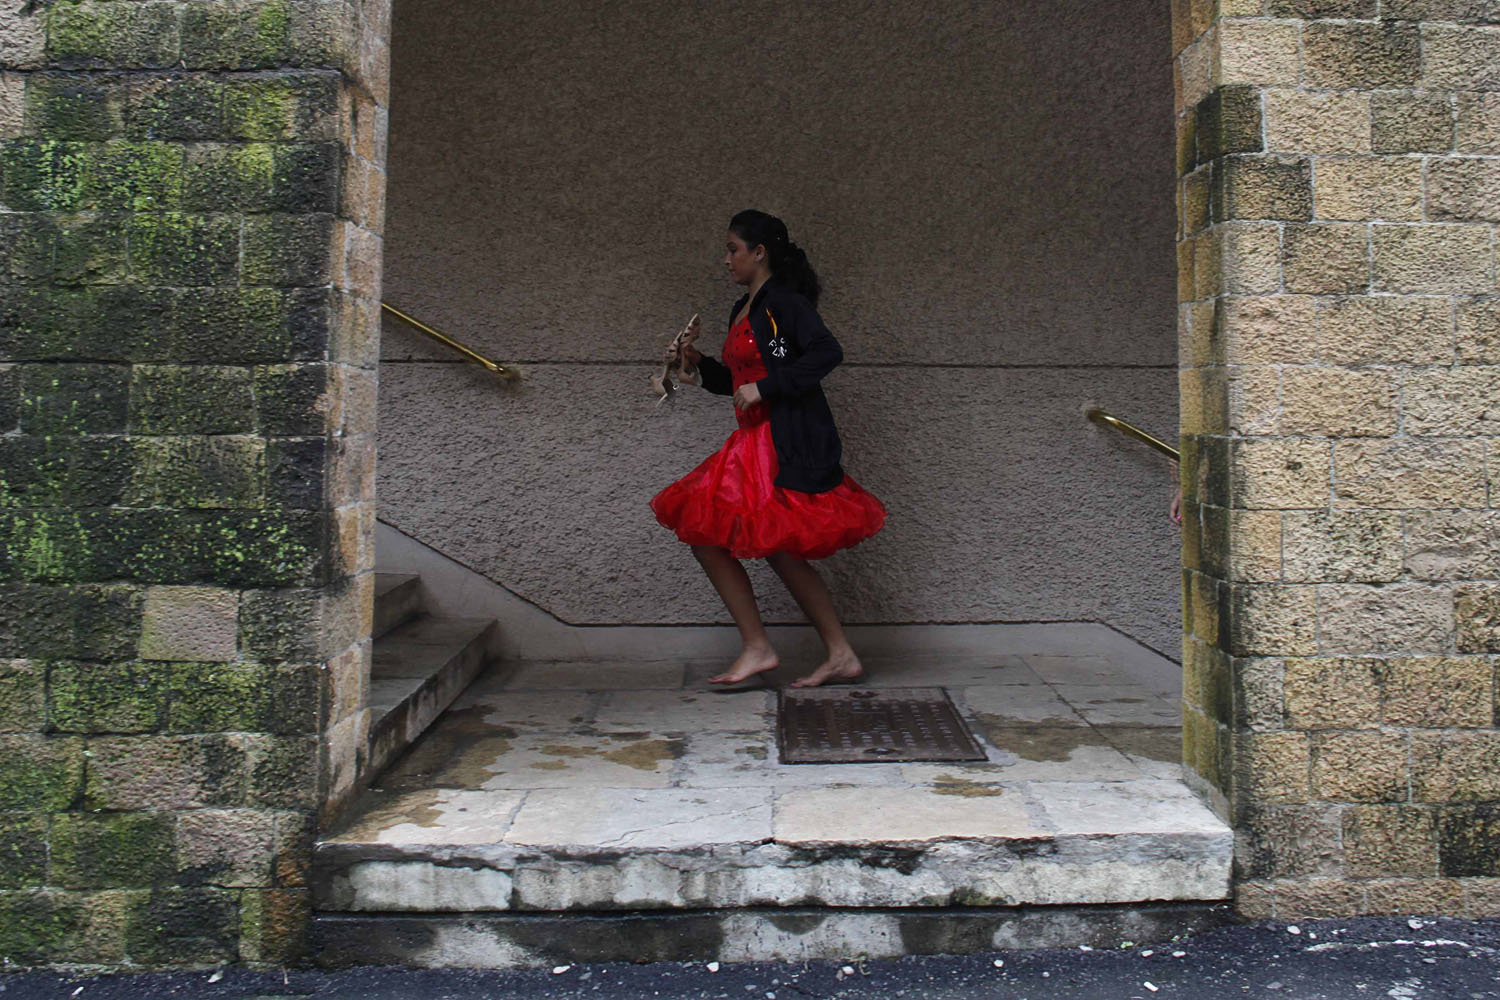 Sept. 15, 2012. A contestant runs with her shoes in her hand during the 4th annual Maharashtra State Open Dance Sport Championship in Mumbai.